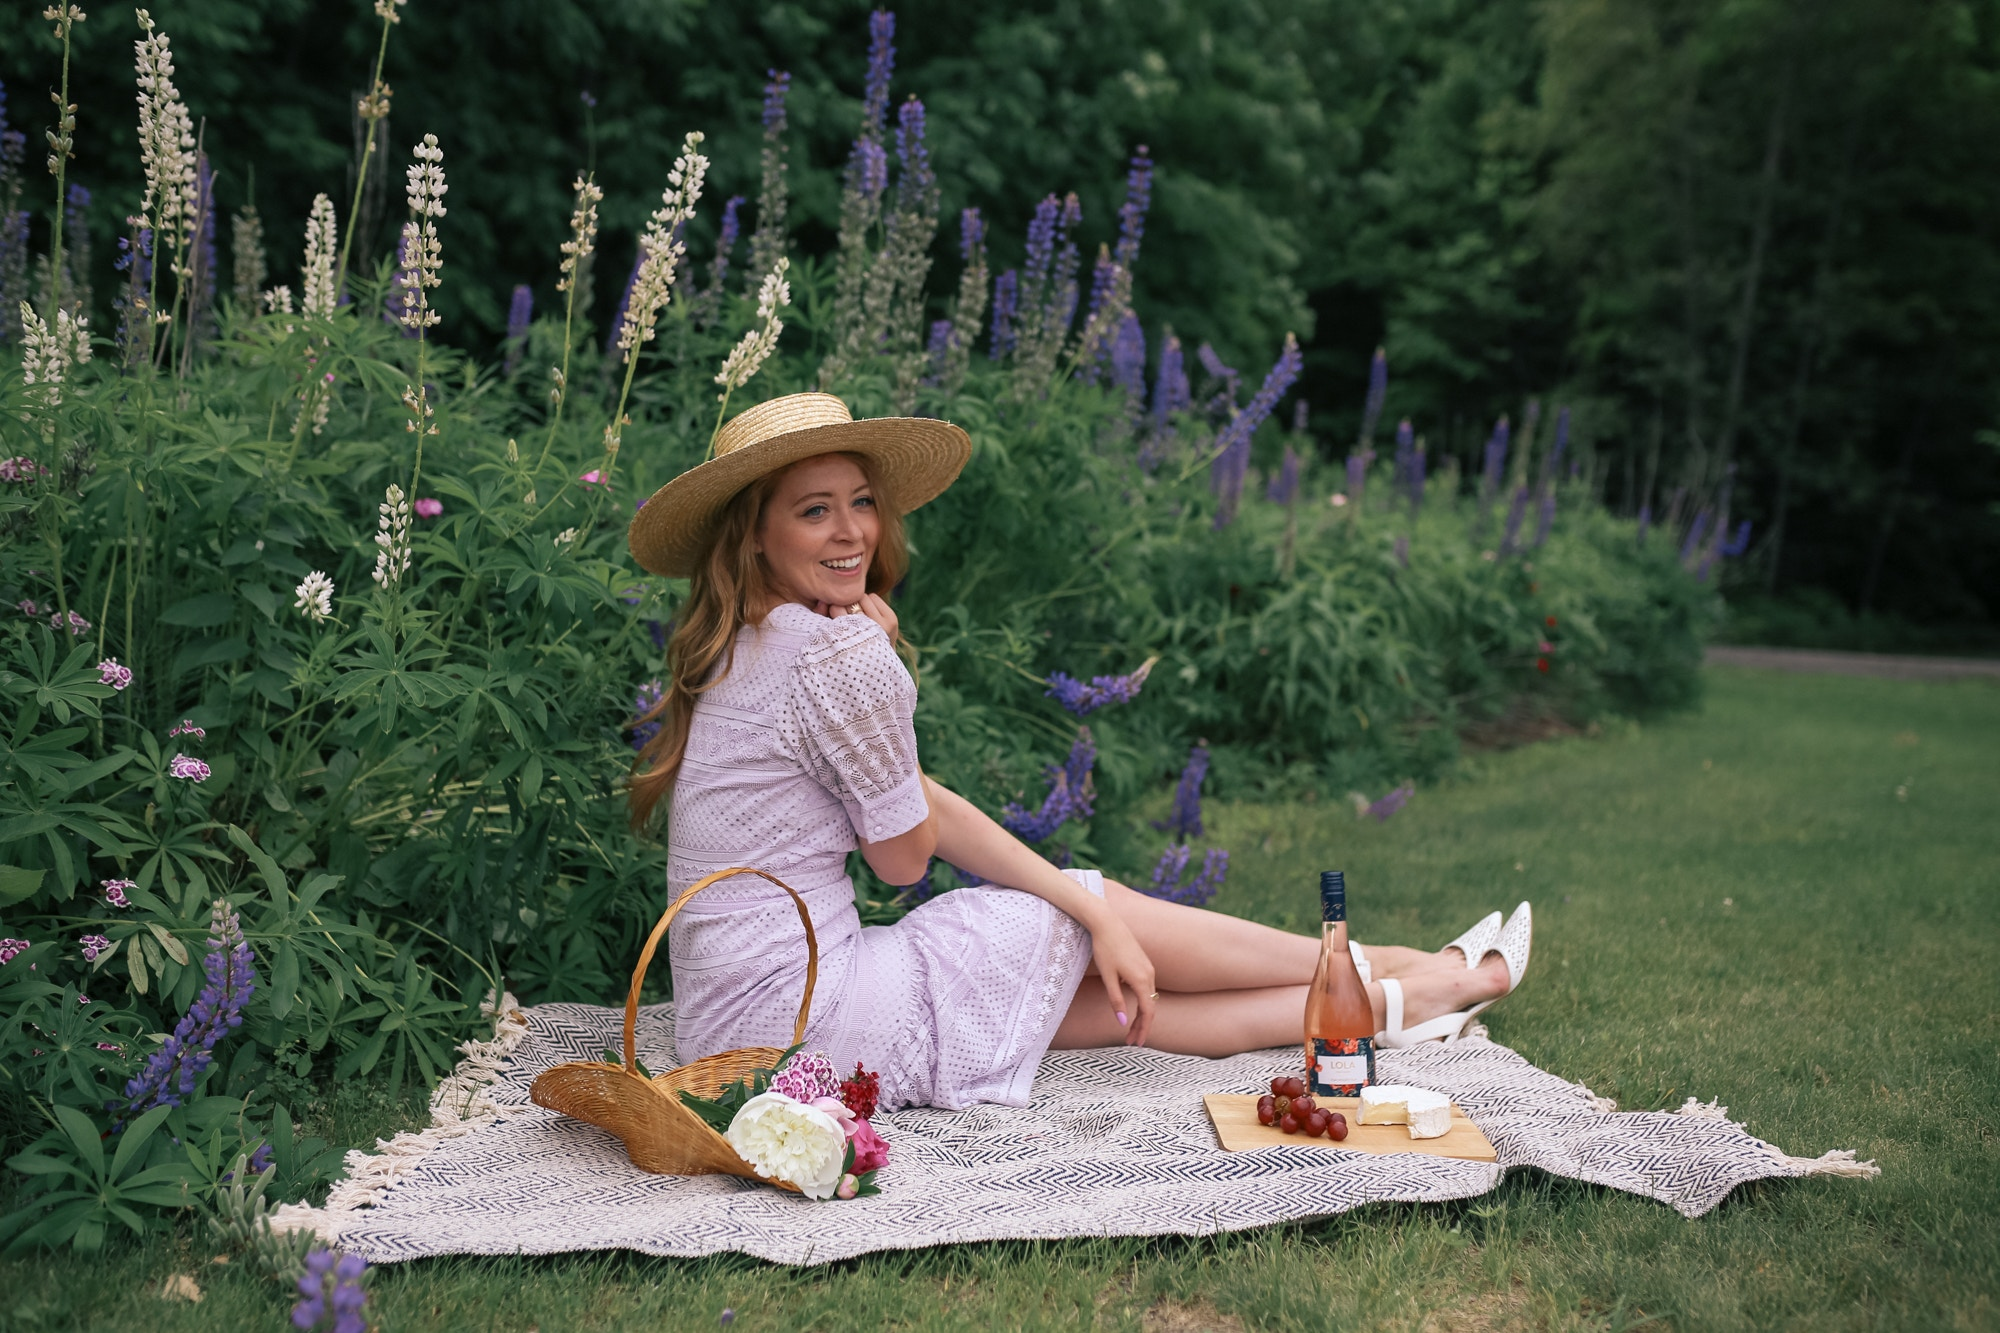 A picnic would never be complete without rose, a pretty lace dress and some cheese! Check out my Rachel Parcell Dress Review - Purple Hush Square Neck Lace Dress for more!